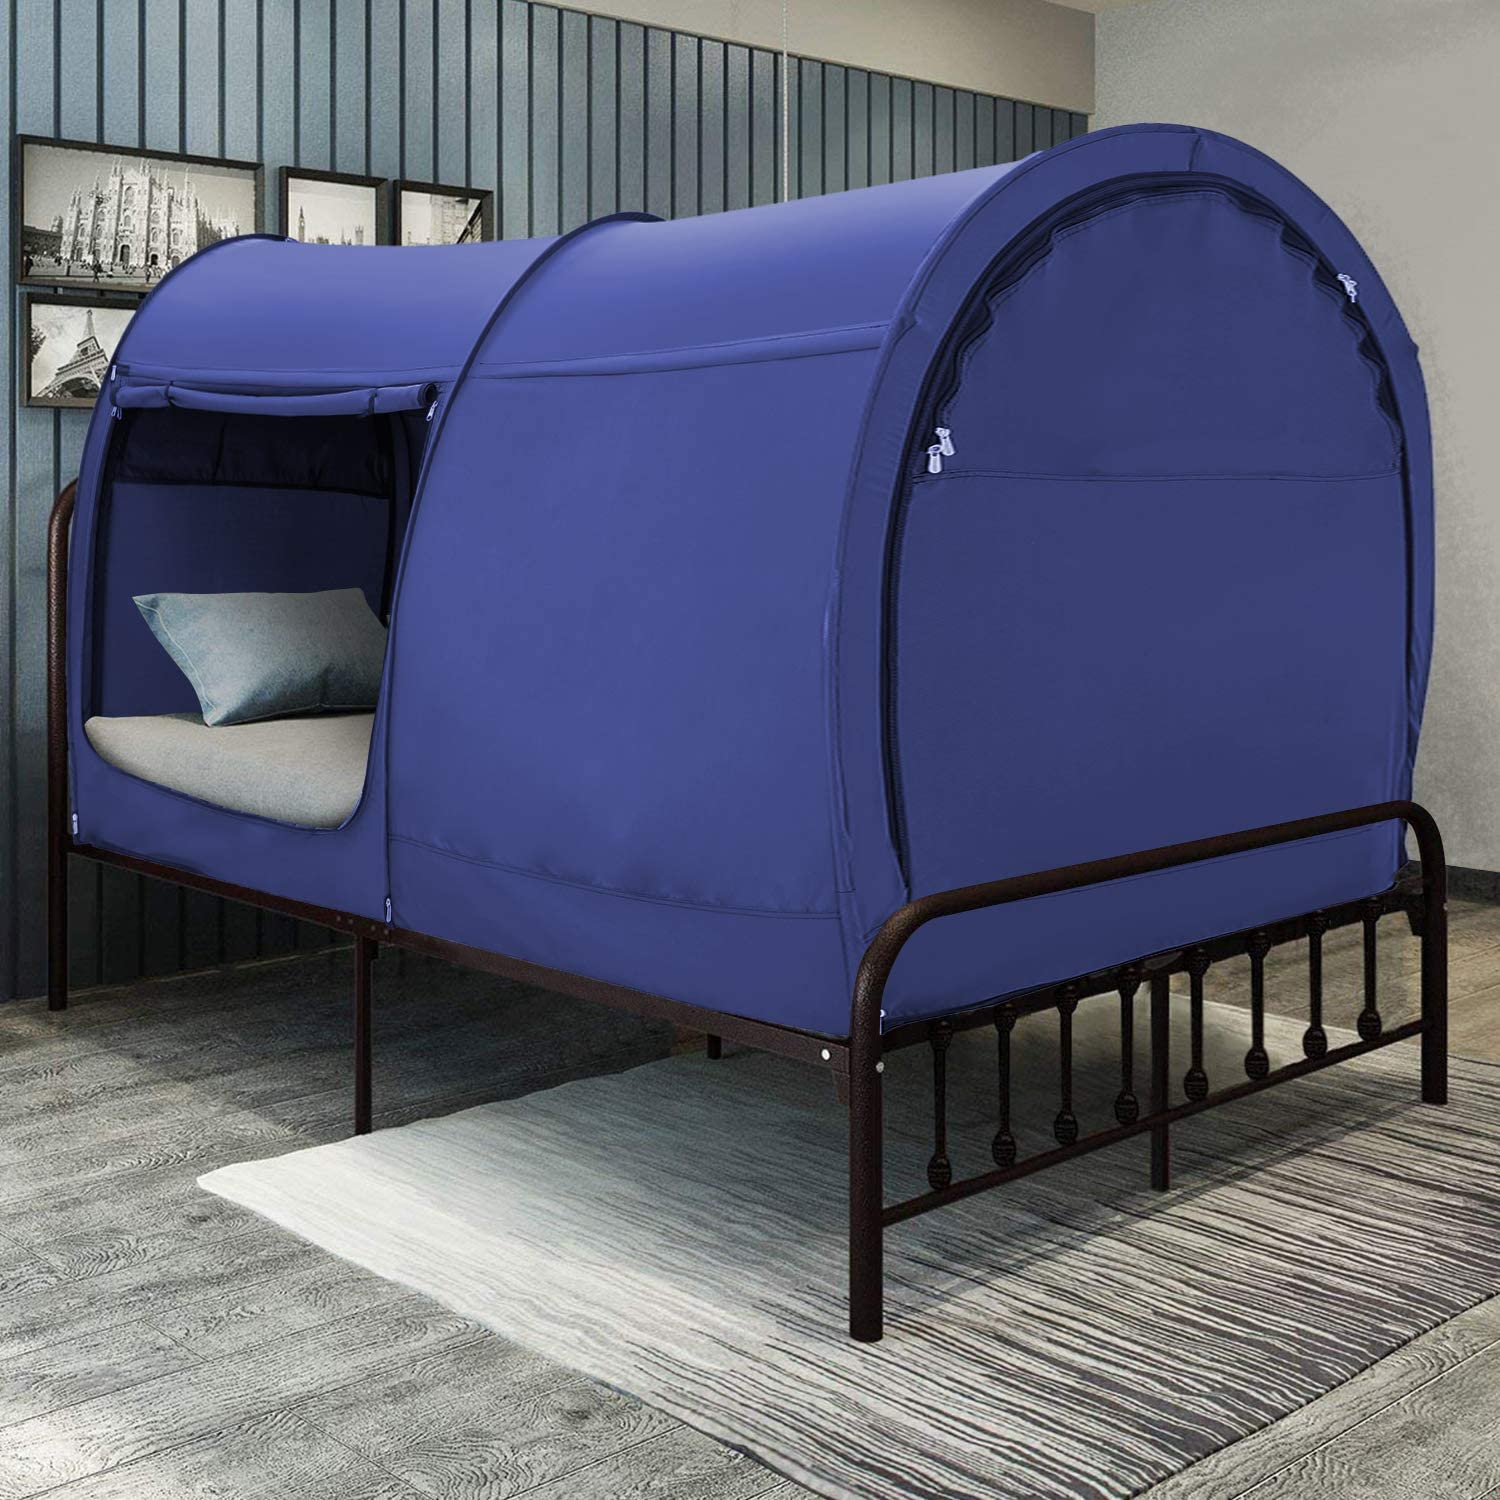 Bed Tent Dream Tents Bed Canopy Shelter Cabin Indoor Privacy Pop Up Warm Breathable Twin Size for Kids and Adult Patent Pending Blue(Mattress Not Included)